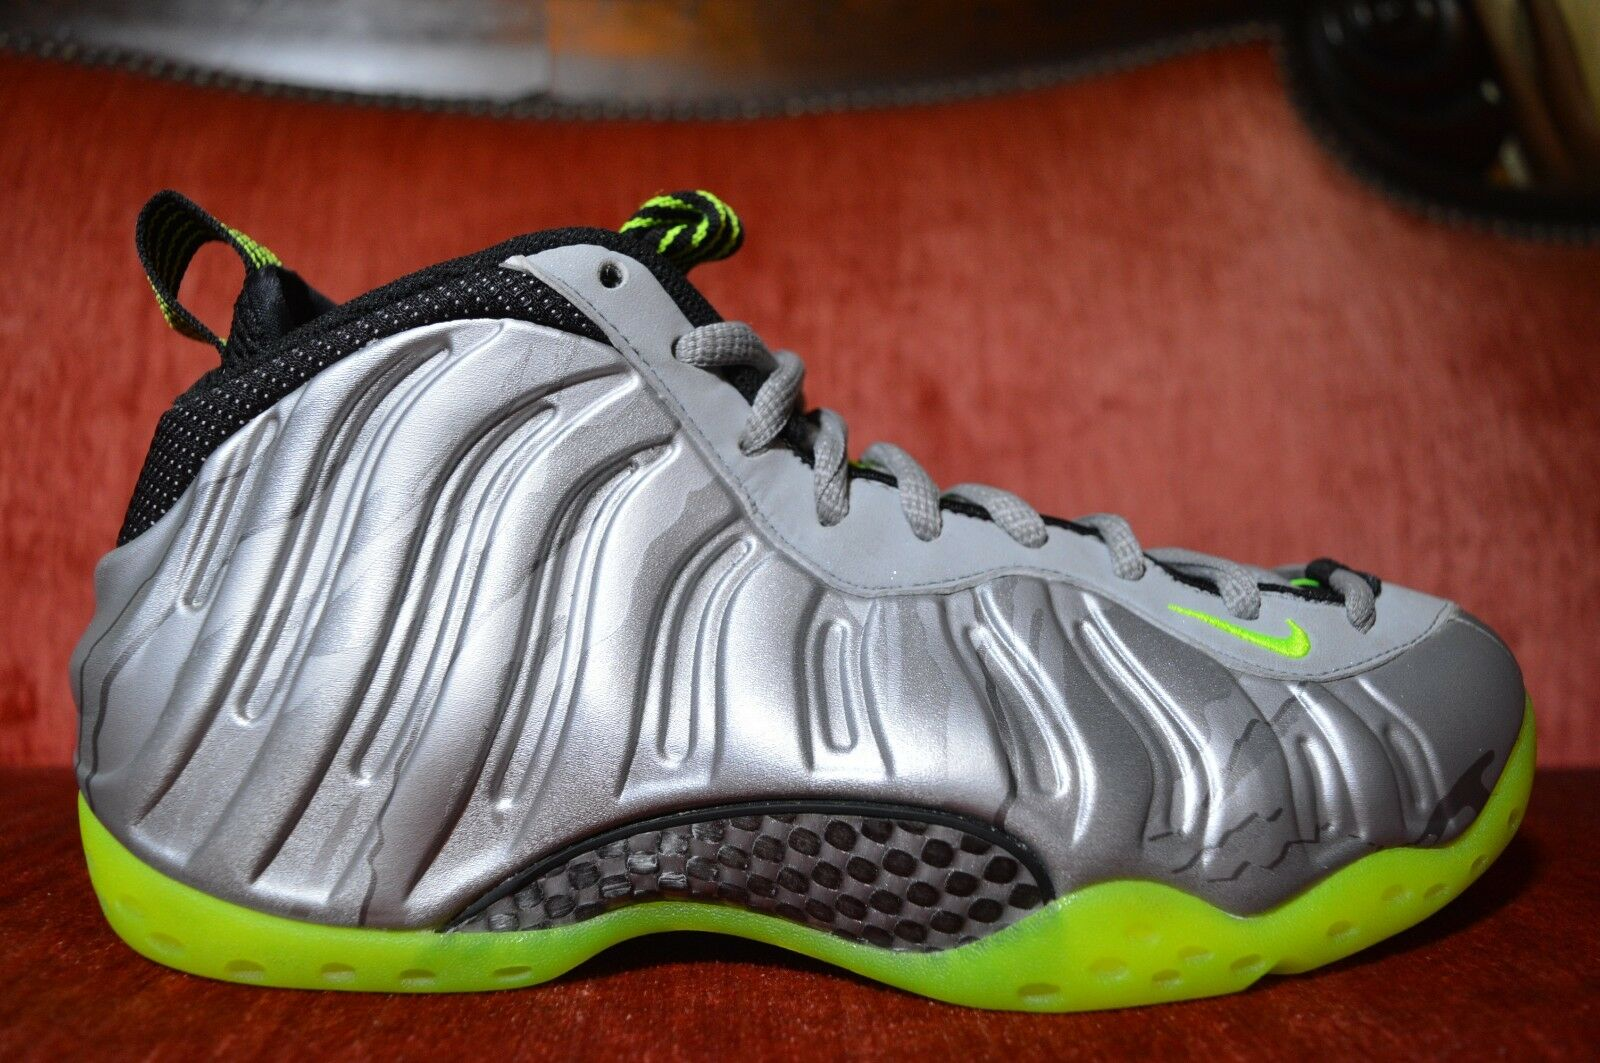 WORN 1X Nike Air Foamposite One 1 PRM Volt-Black-Metallic Silver Camo 575420-004 best-selling model of the brand